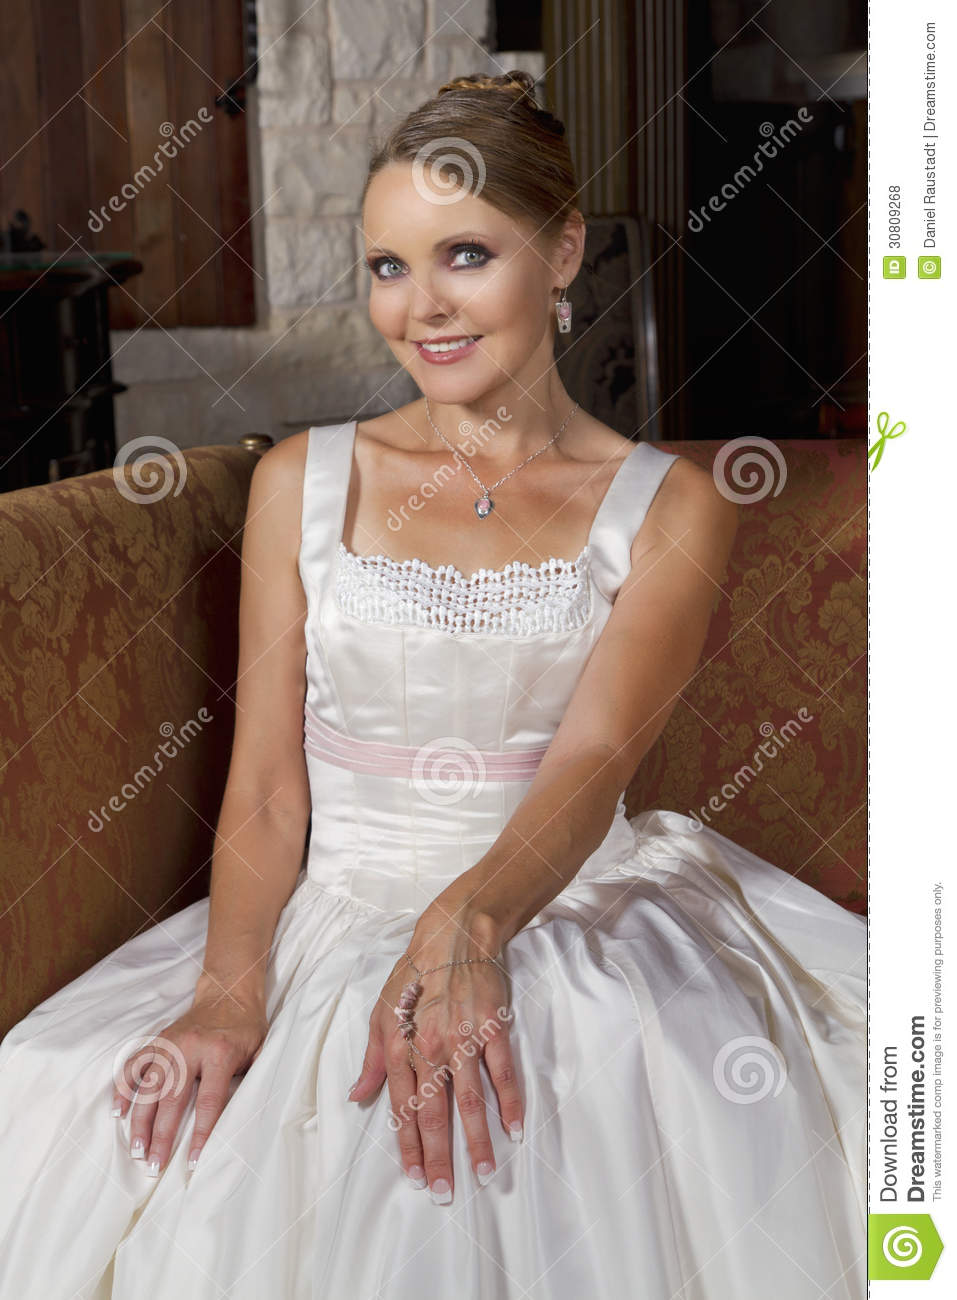 Beautiful bride in wedding gown wearing a necklace royalty for Bracelet for wedding dress